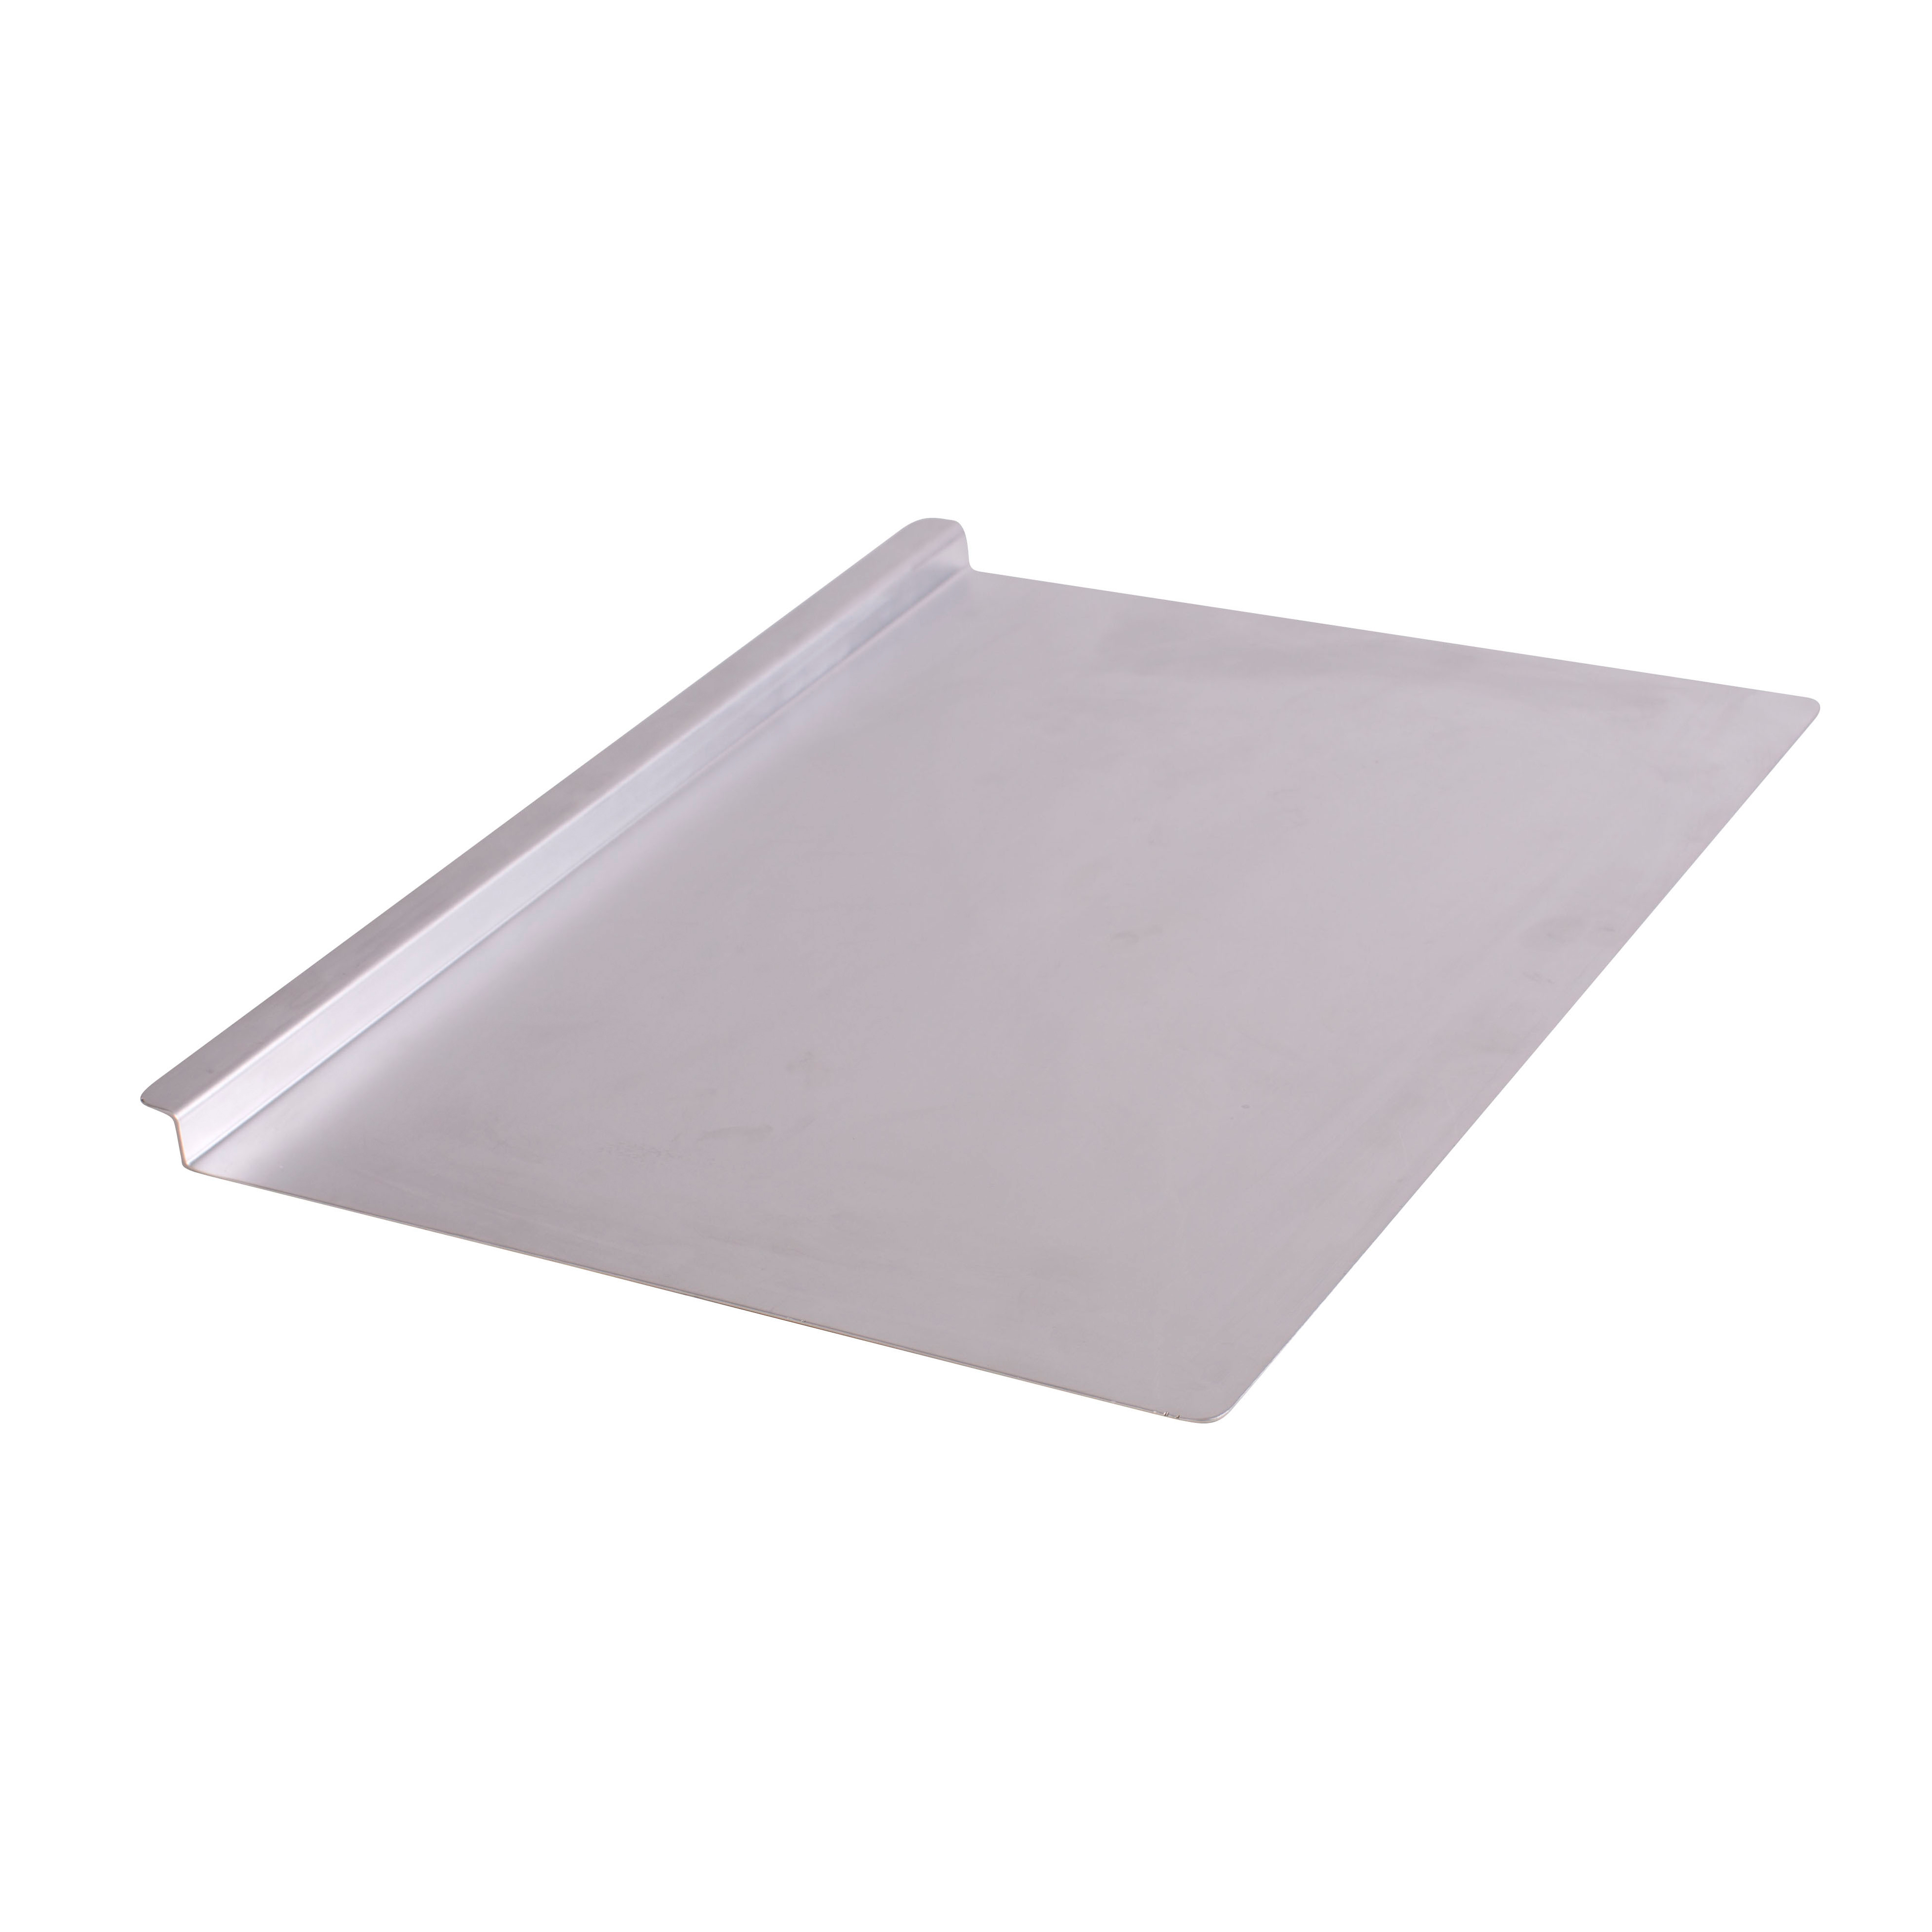 Winco CS-2014 baking cookie sheet